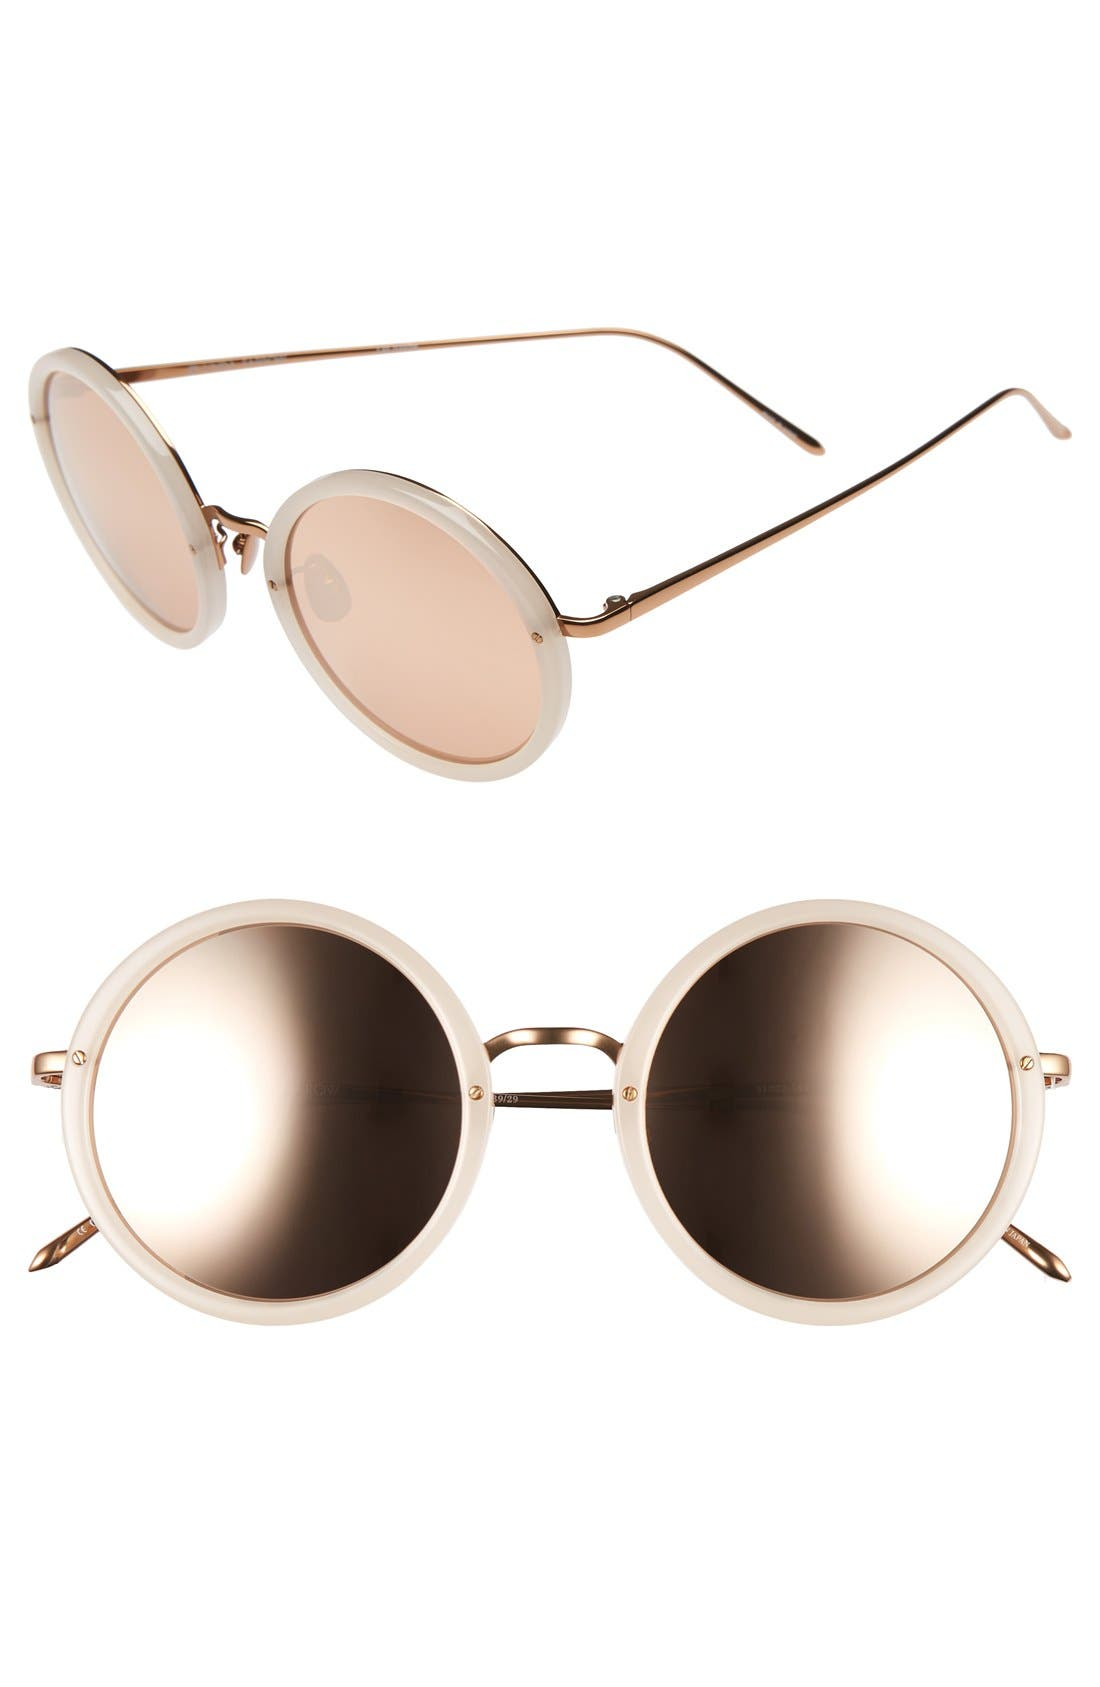 51mm Round 18 Karat Rose Gold Trim Sunglasses,                             Main thumbnail 1, color,                             Milky Pink/ Rose Gold